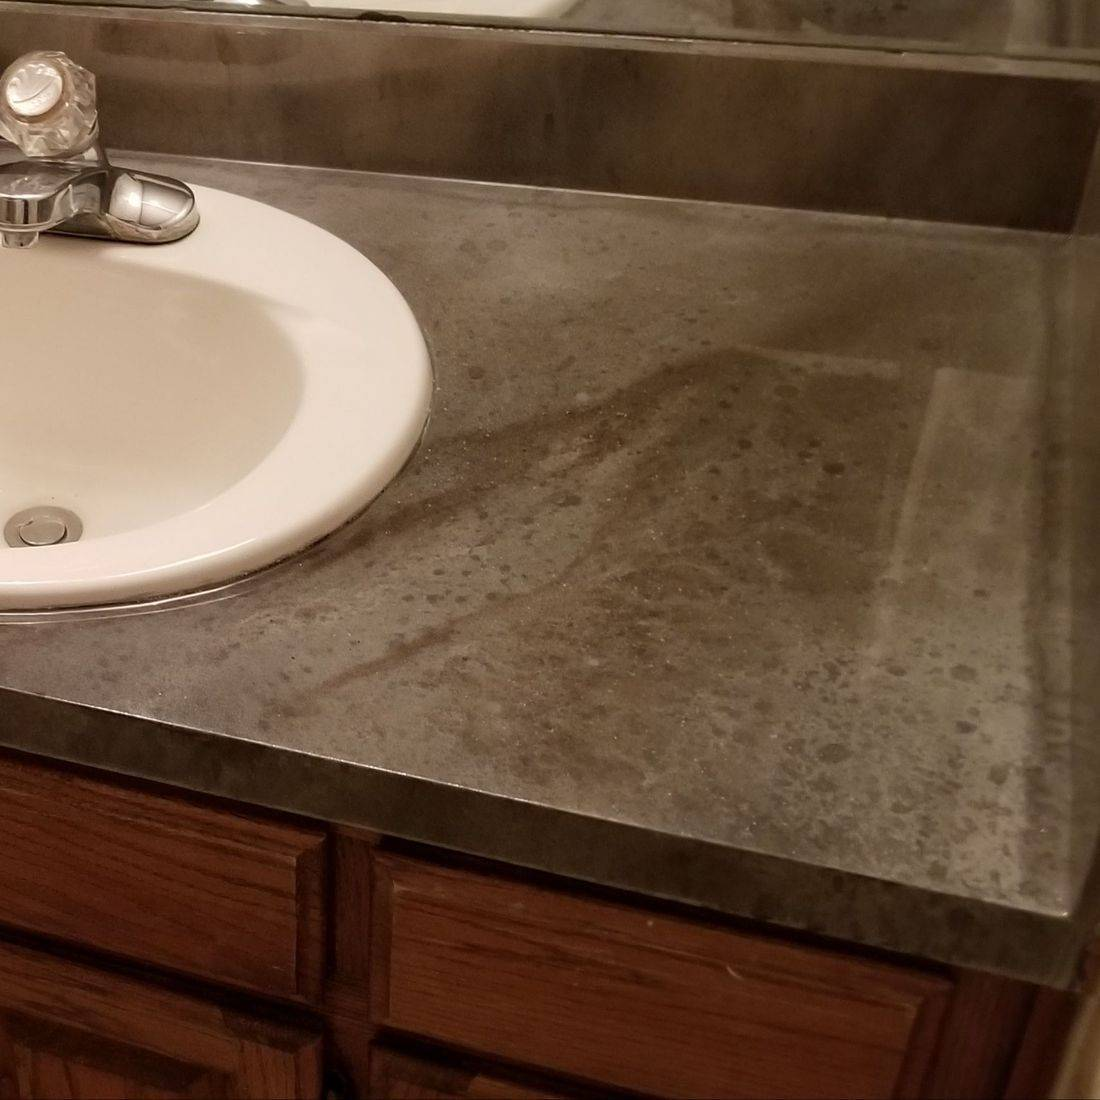 CounterFIT LLC - Bathroom countertop installation